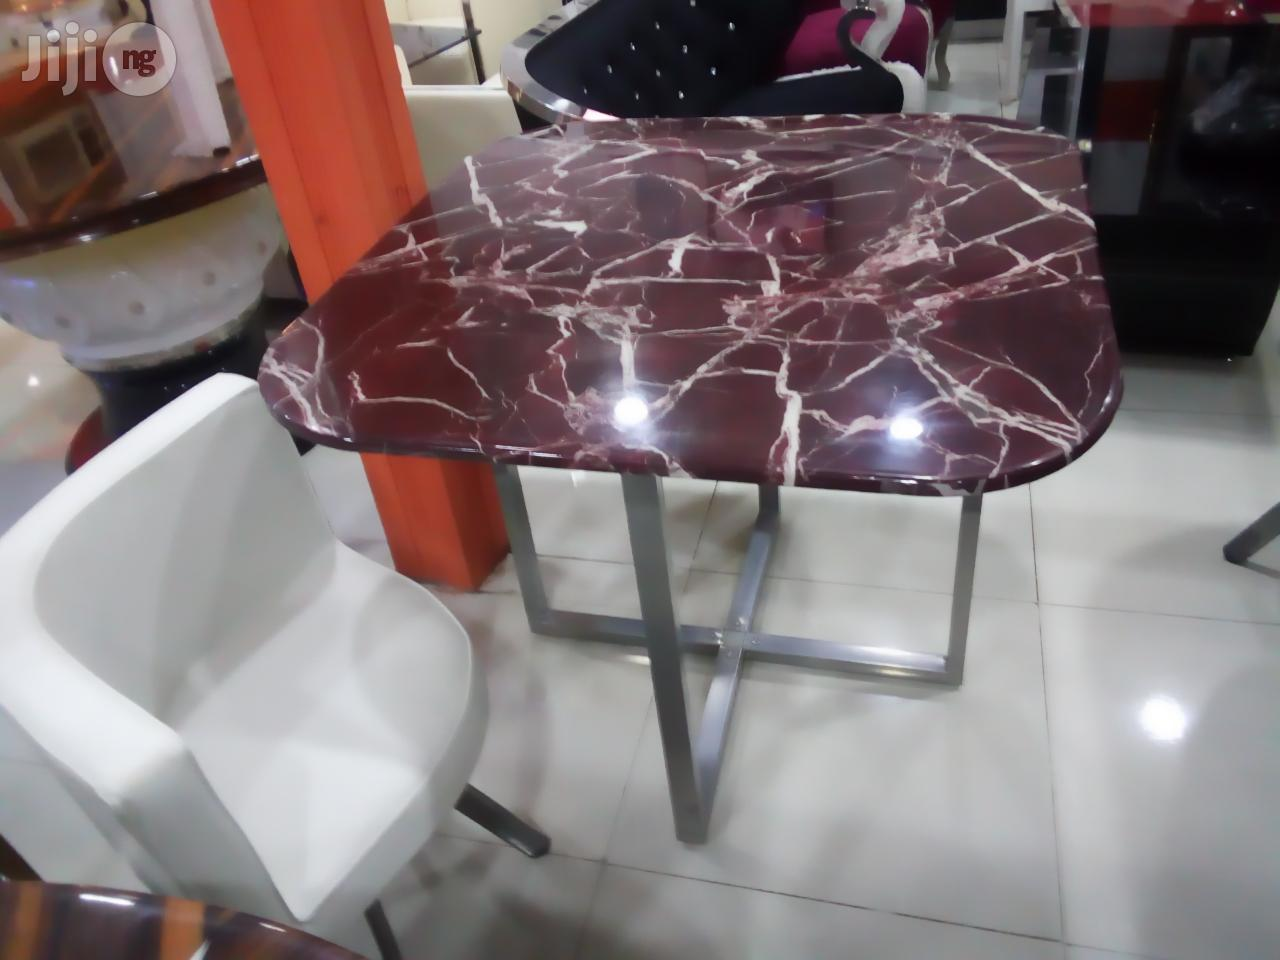 Super Executive 4sitter Marble Dinning With 4 Leather Chairs. | Furniture for sale in Lekki, Lagos State, Nigeria